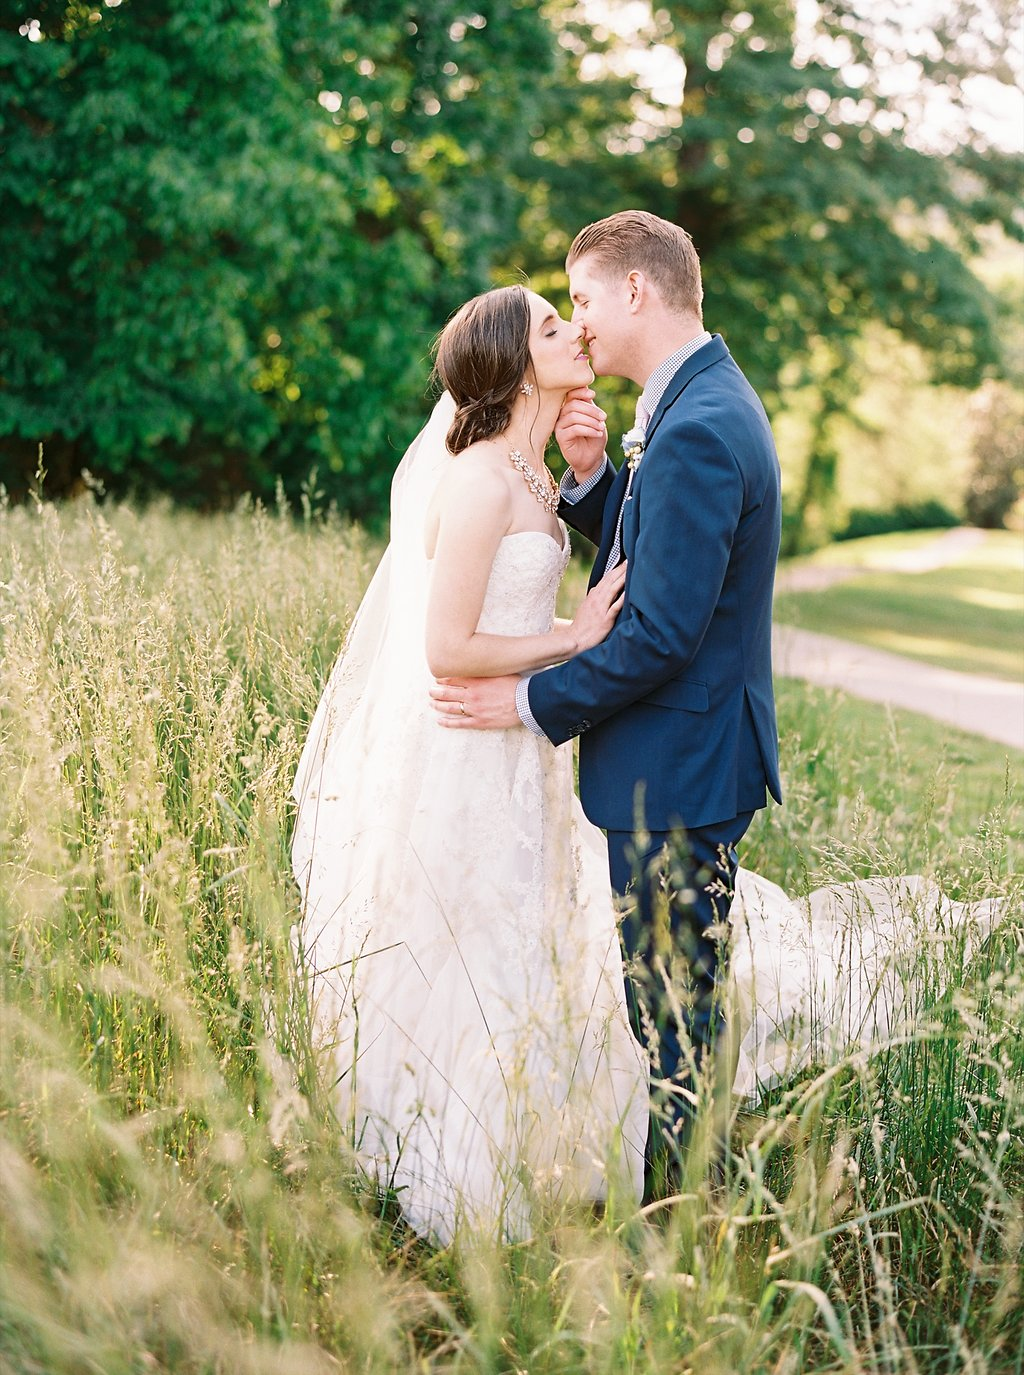 Sweet Newlywed Photos in a Field of Tall Grass after our Wedding Ceremony | Blush and Navy Wedding with Fuchsia, French Blue and Gold Accents | Simply Jessica Marie's Southern Wedding at Gettysvue Golf Course and Country Club in Knoxville Tennessee | Photo by Perry Vaile Photography